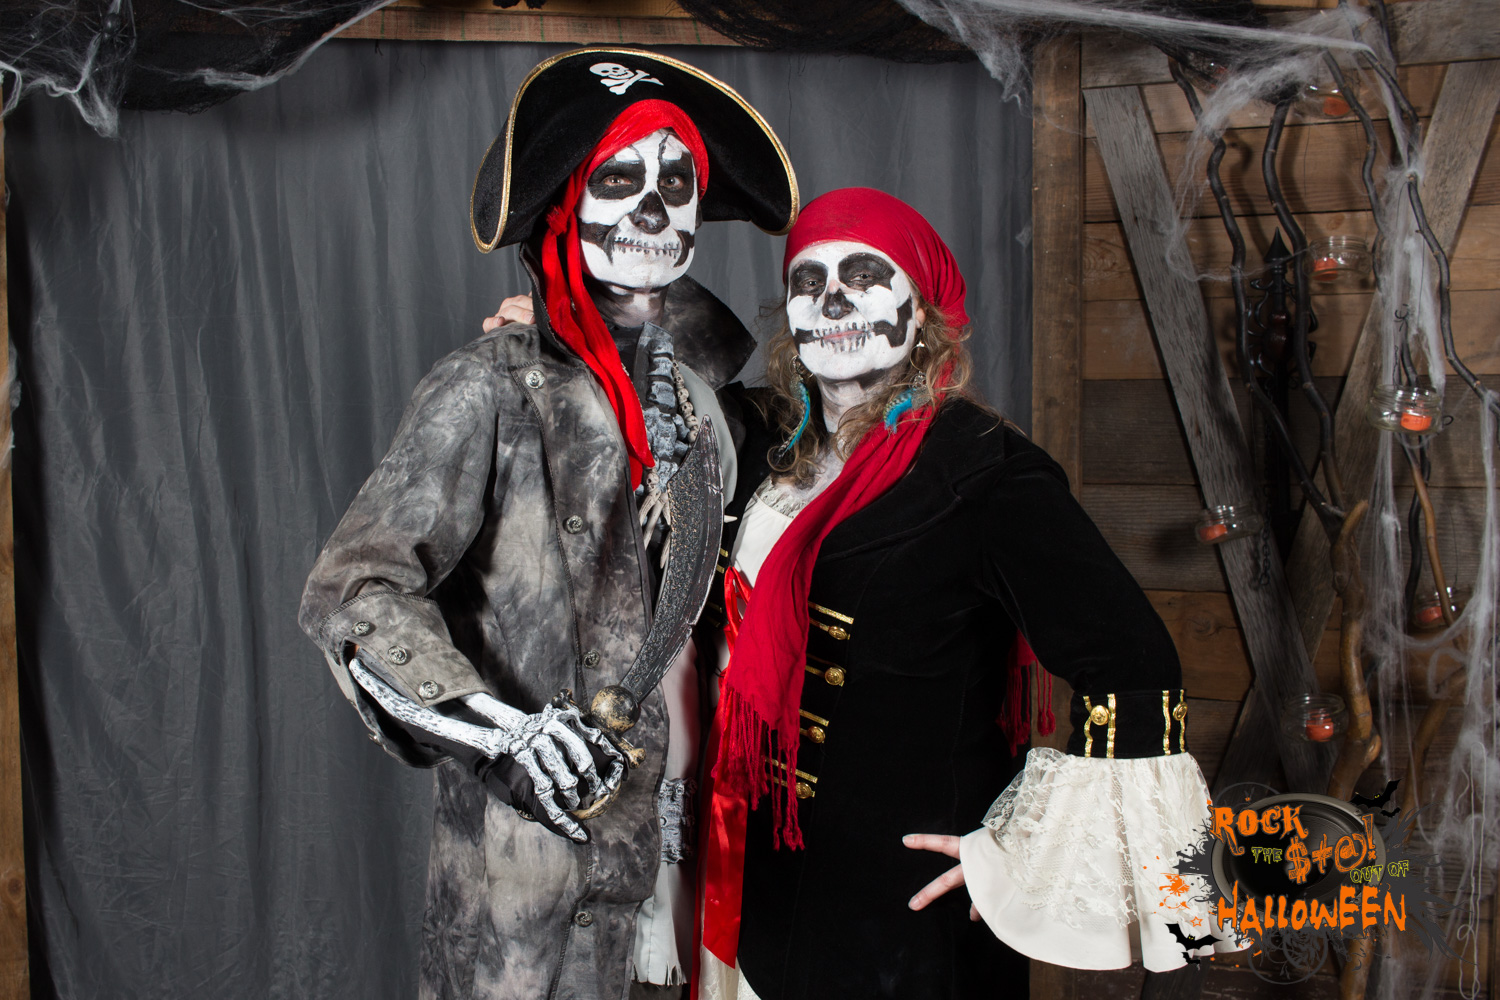 Halloween-PhotoBooth-040-6772